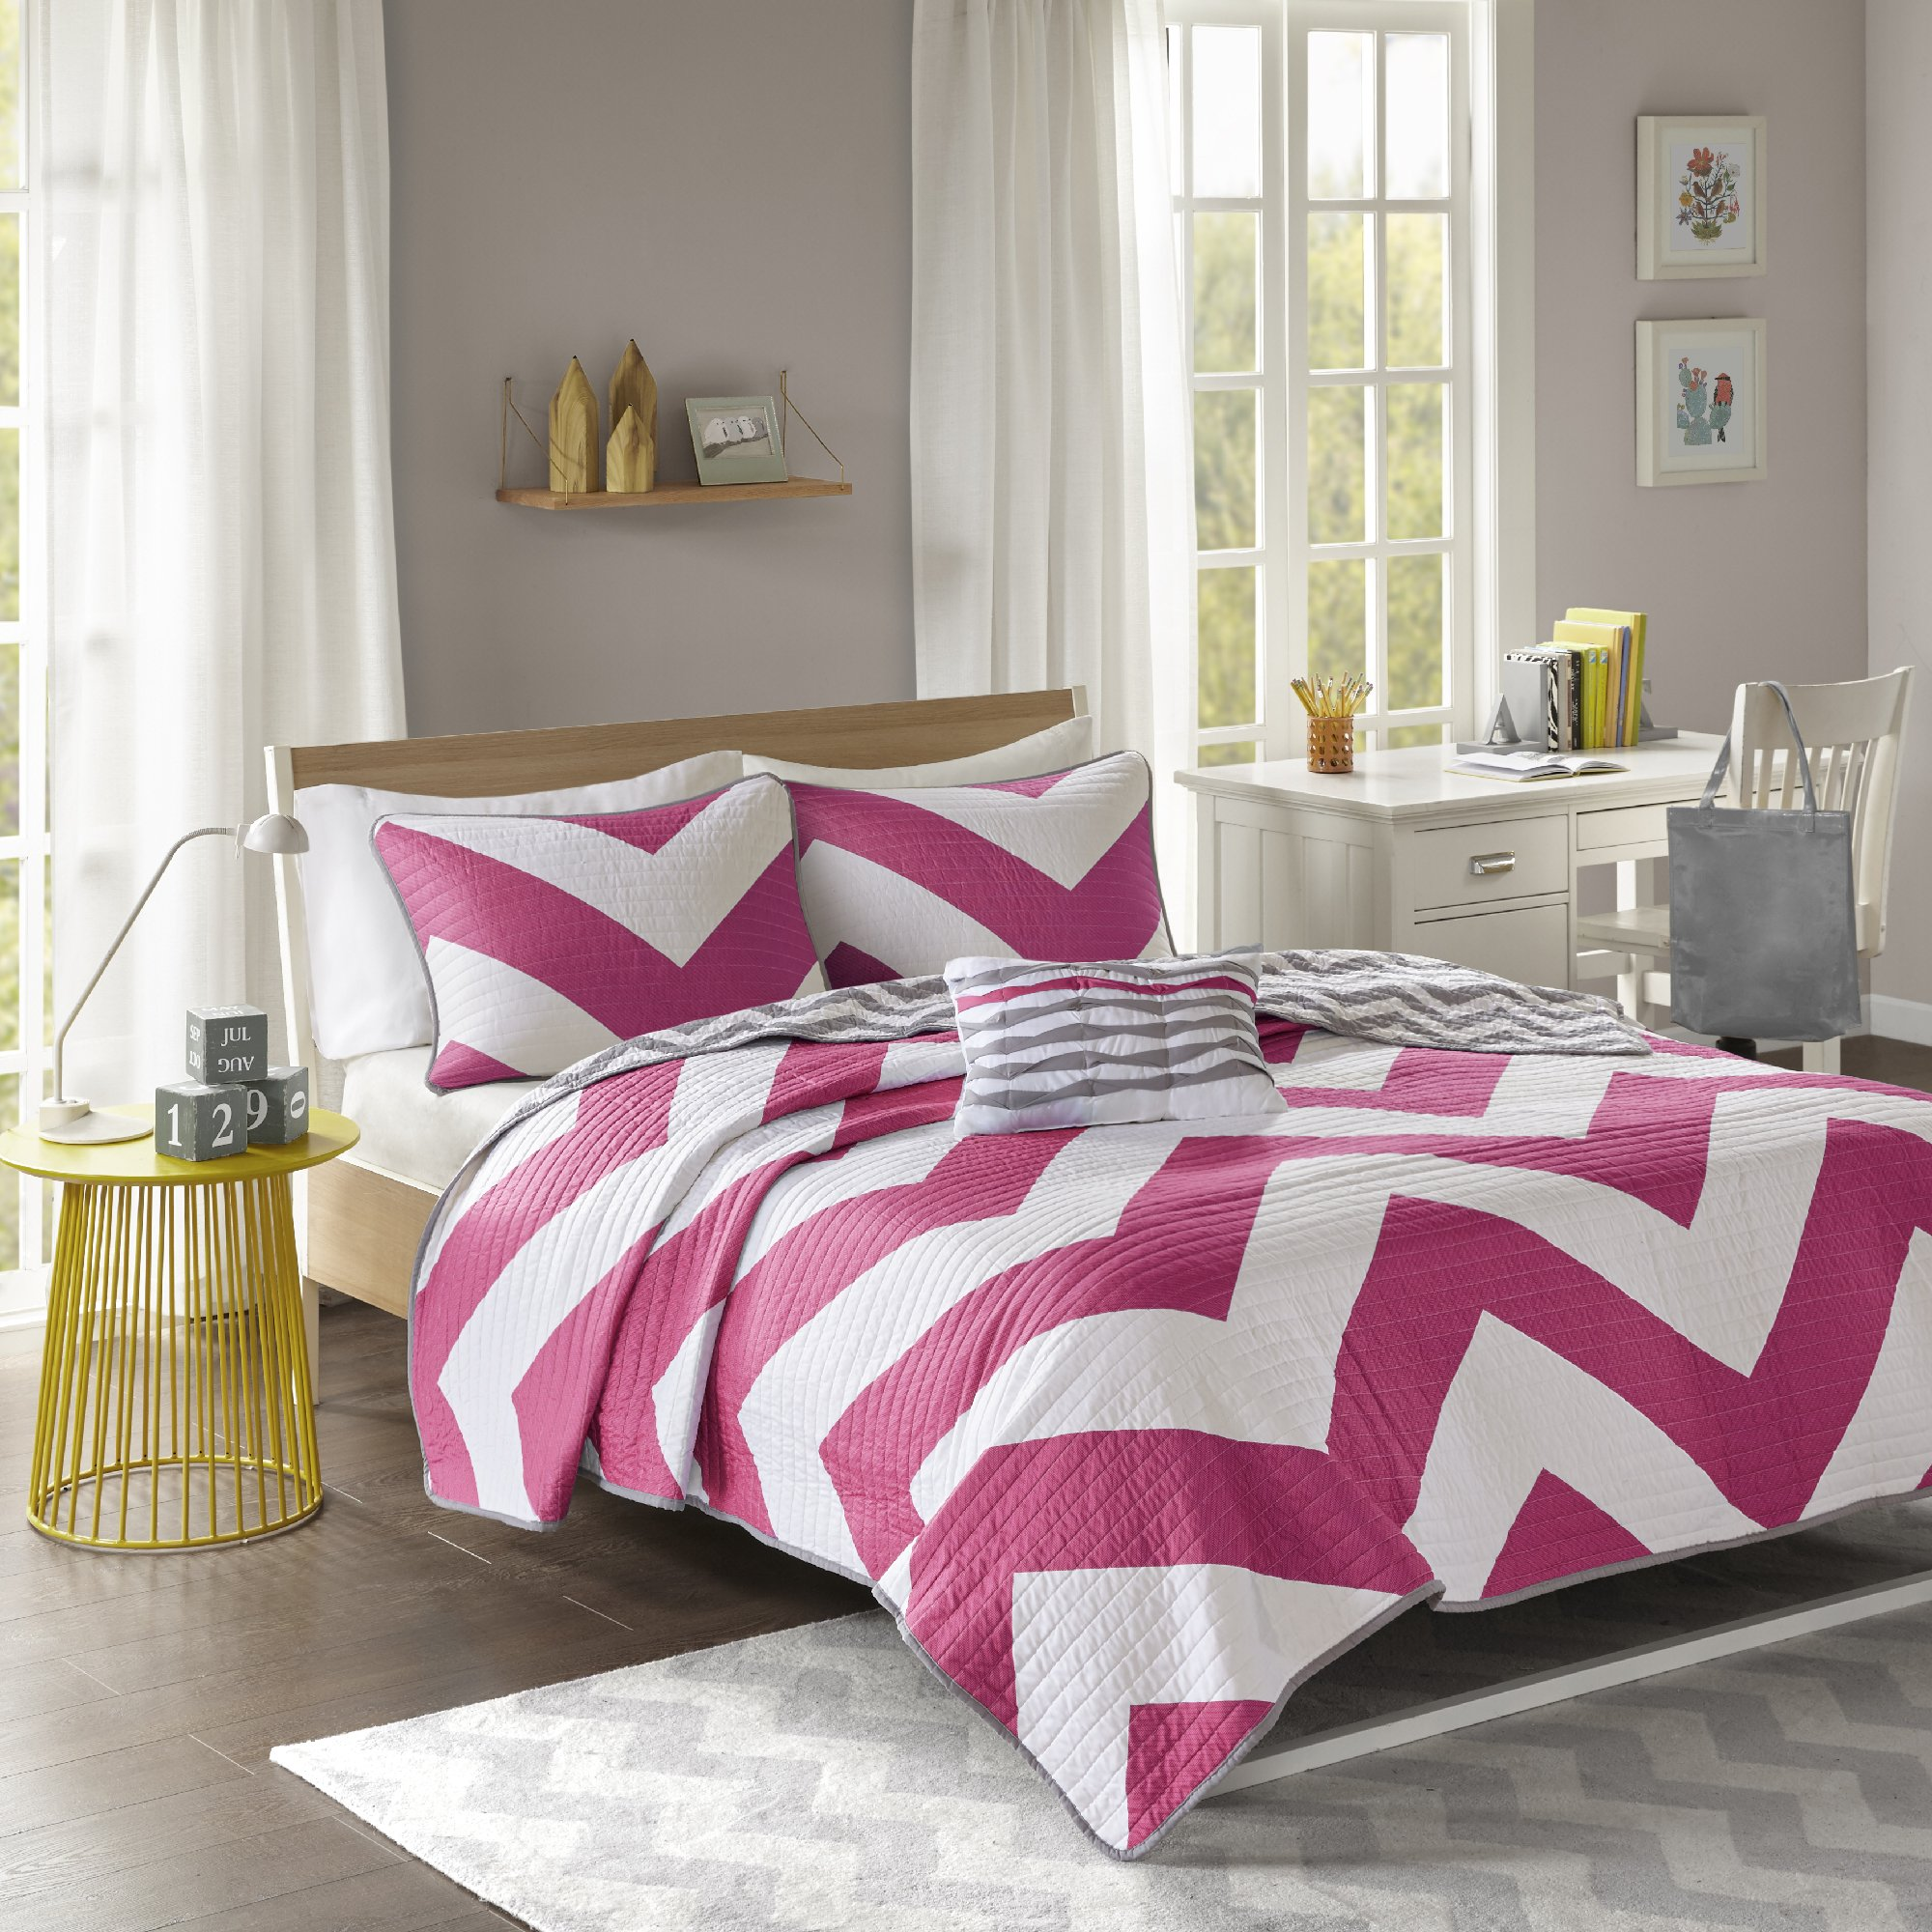 Mi-Zone Libra Full/Queen Quilt Bedding Set - Pink, Chevron – 4 Piece Teen Girl Boy Bedding Quilt Coverlets – Ultra Soft Microfiber Bed Quilts Quilted Coverlet